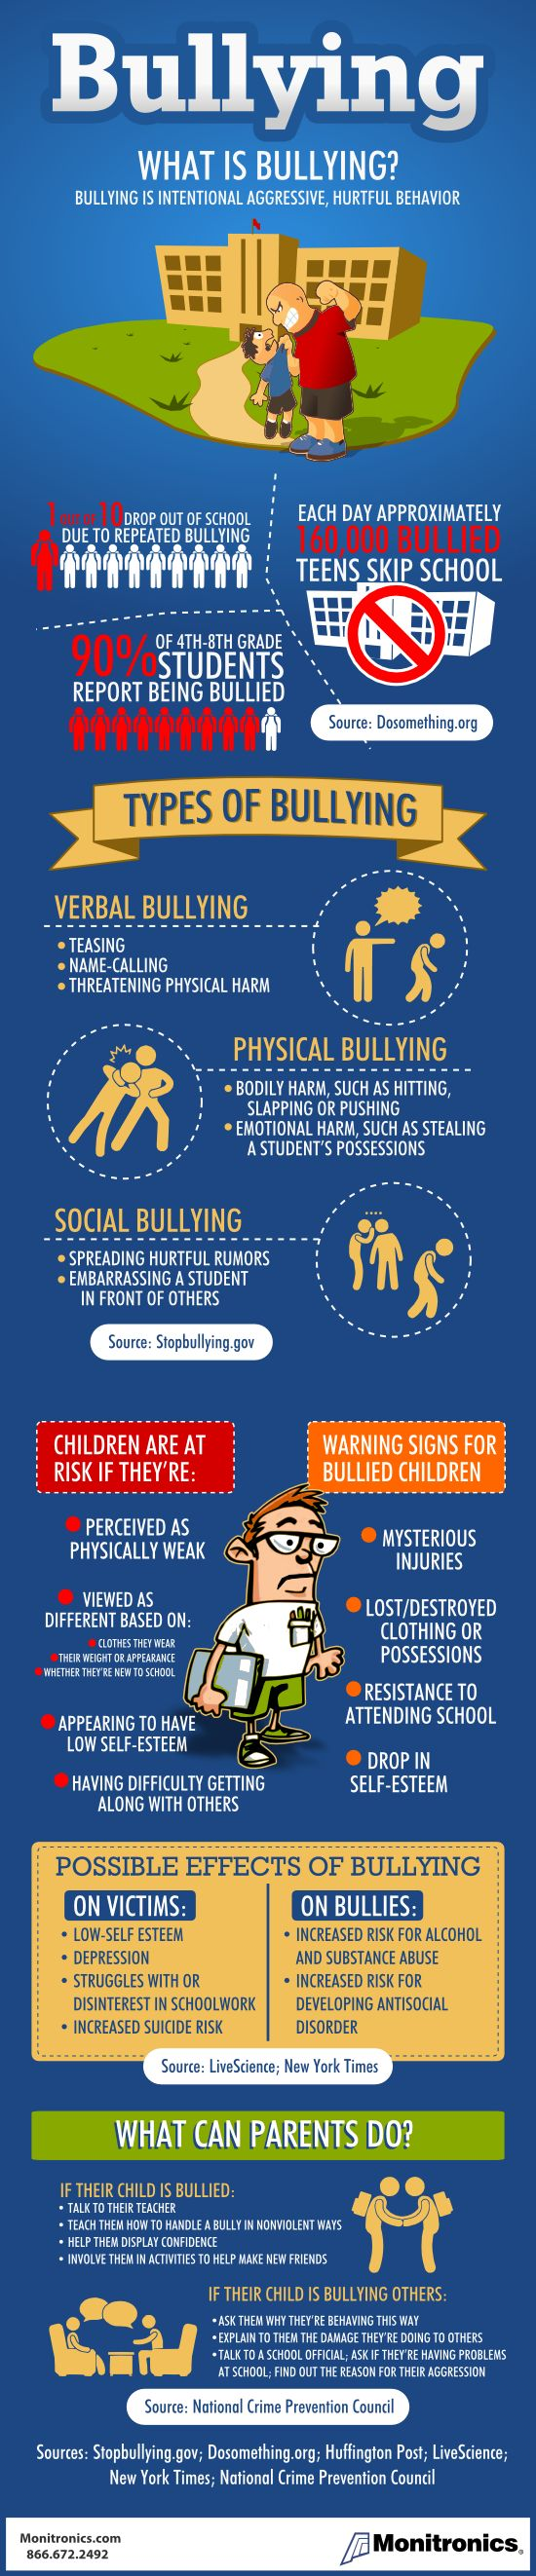 This month marks the eighth annual National Bullying Prevention Month – a campaign dedicated to educating and raising awareness of bullying and how